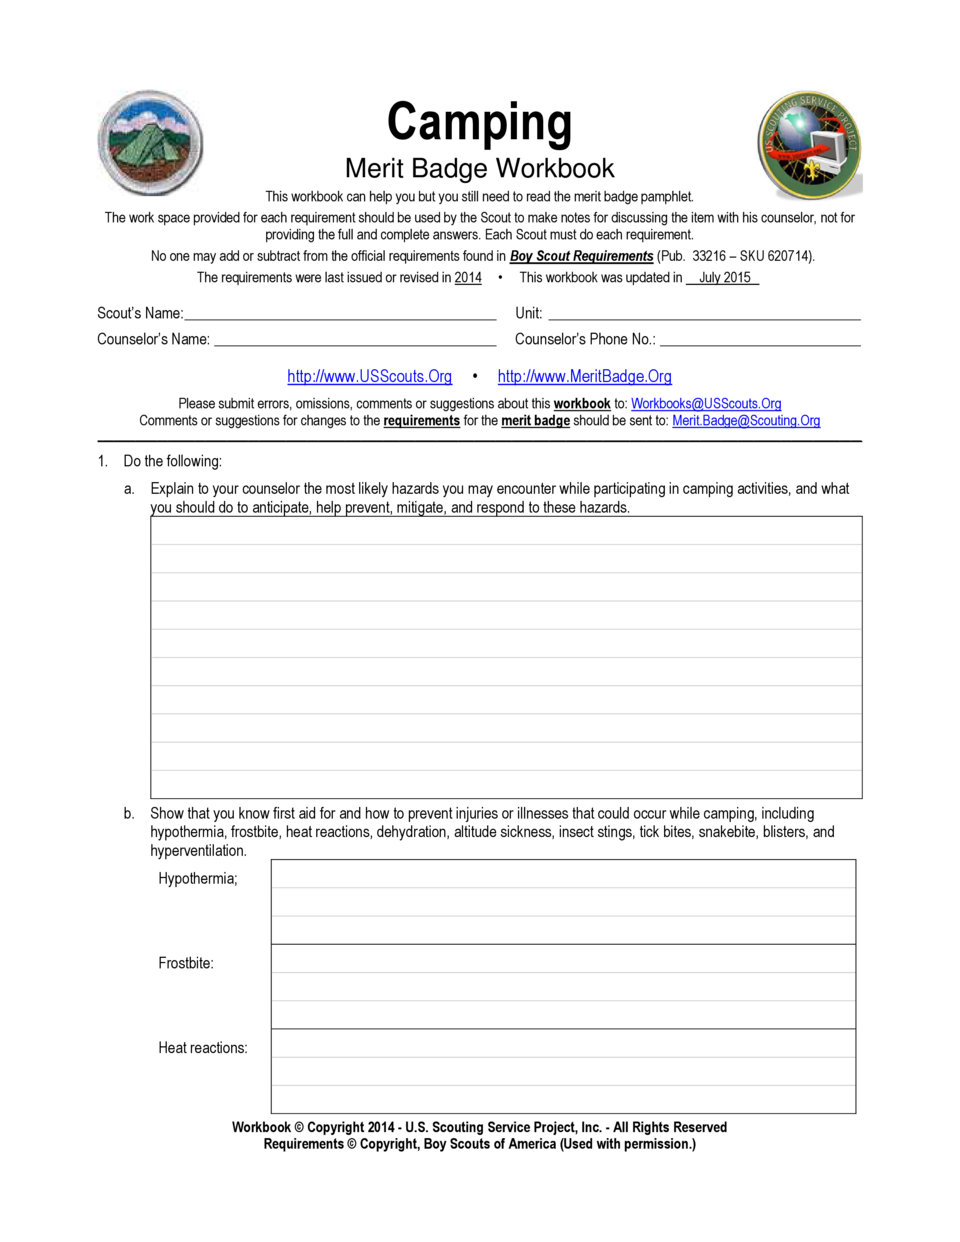 Worksheet Camping Merit Badge Worksheet camping merit badge simplebooklet com workbook this can help you but still need to read the